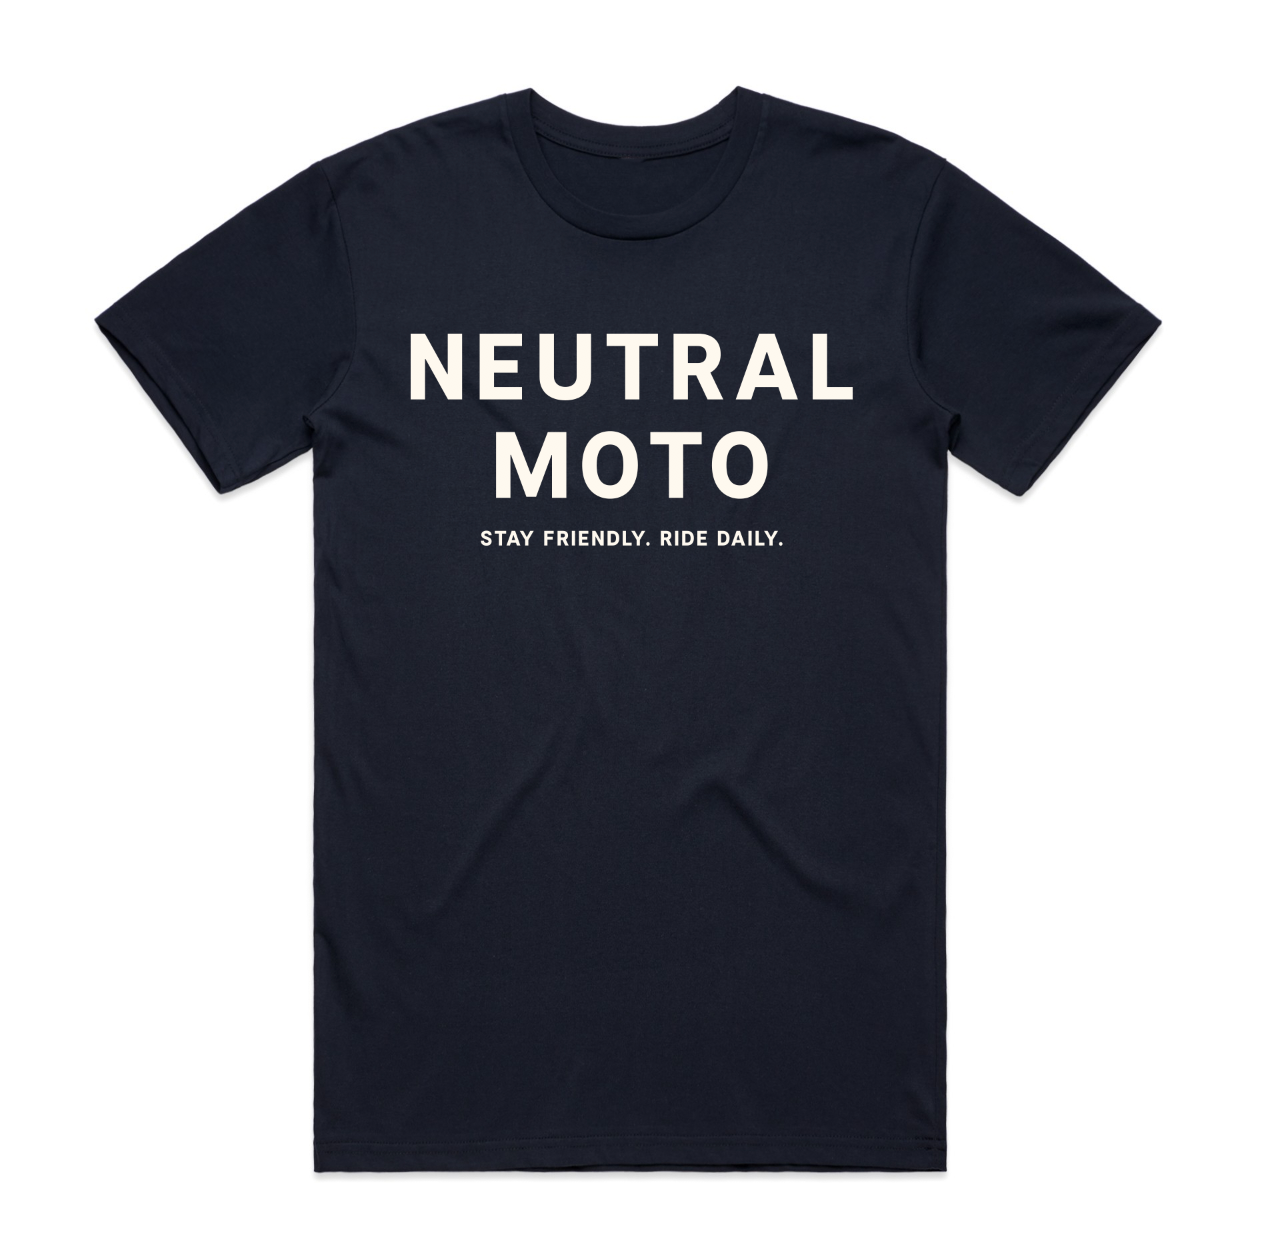 Unisex Short Sleeve Neutral Moto T-shirt - Navy